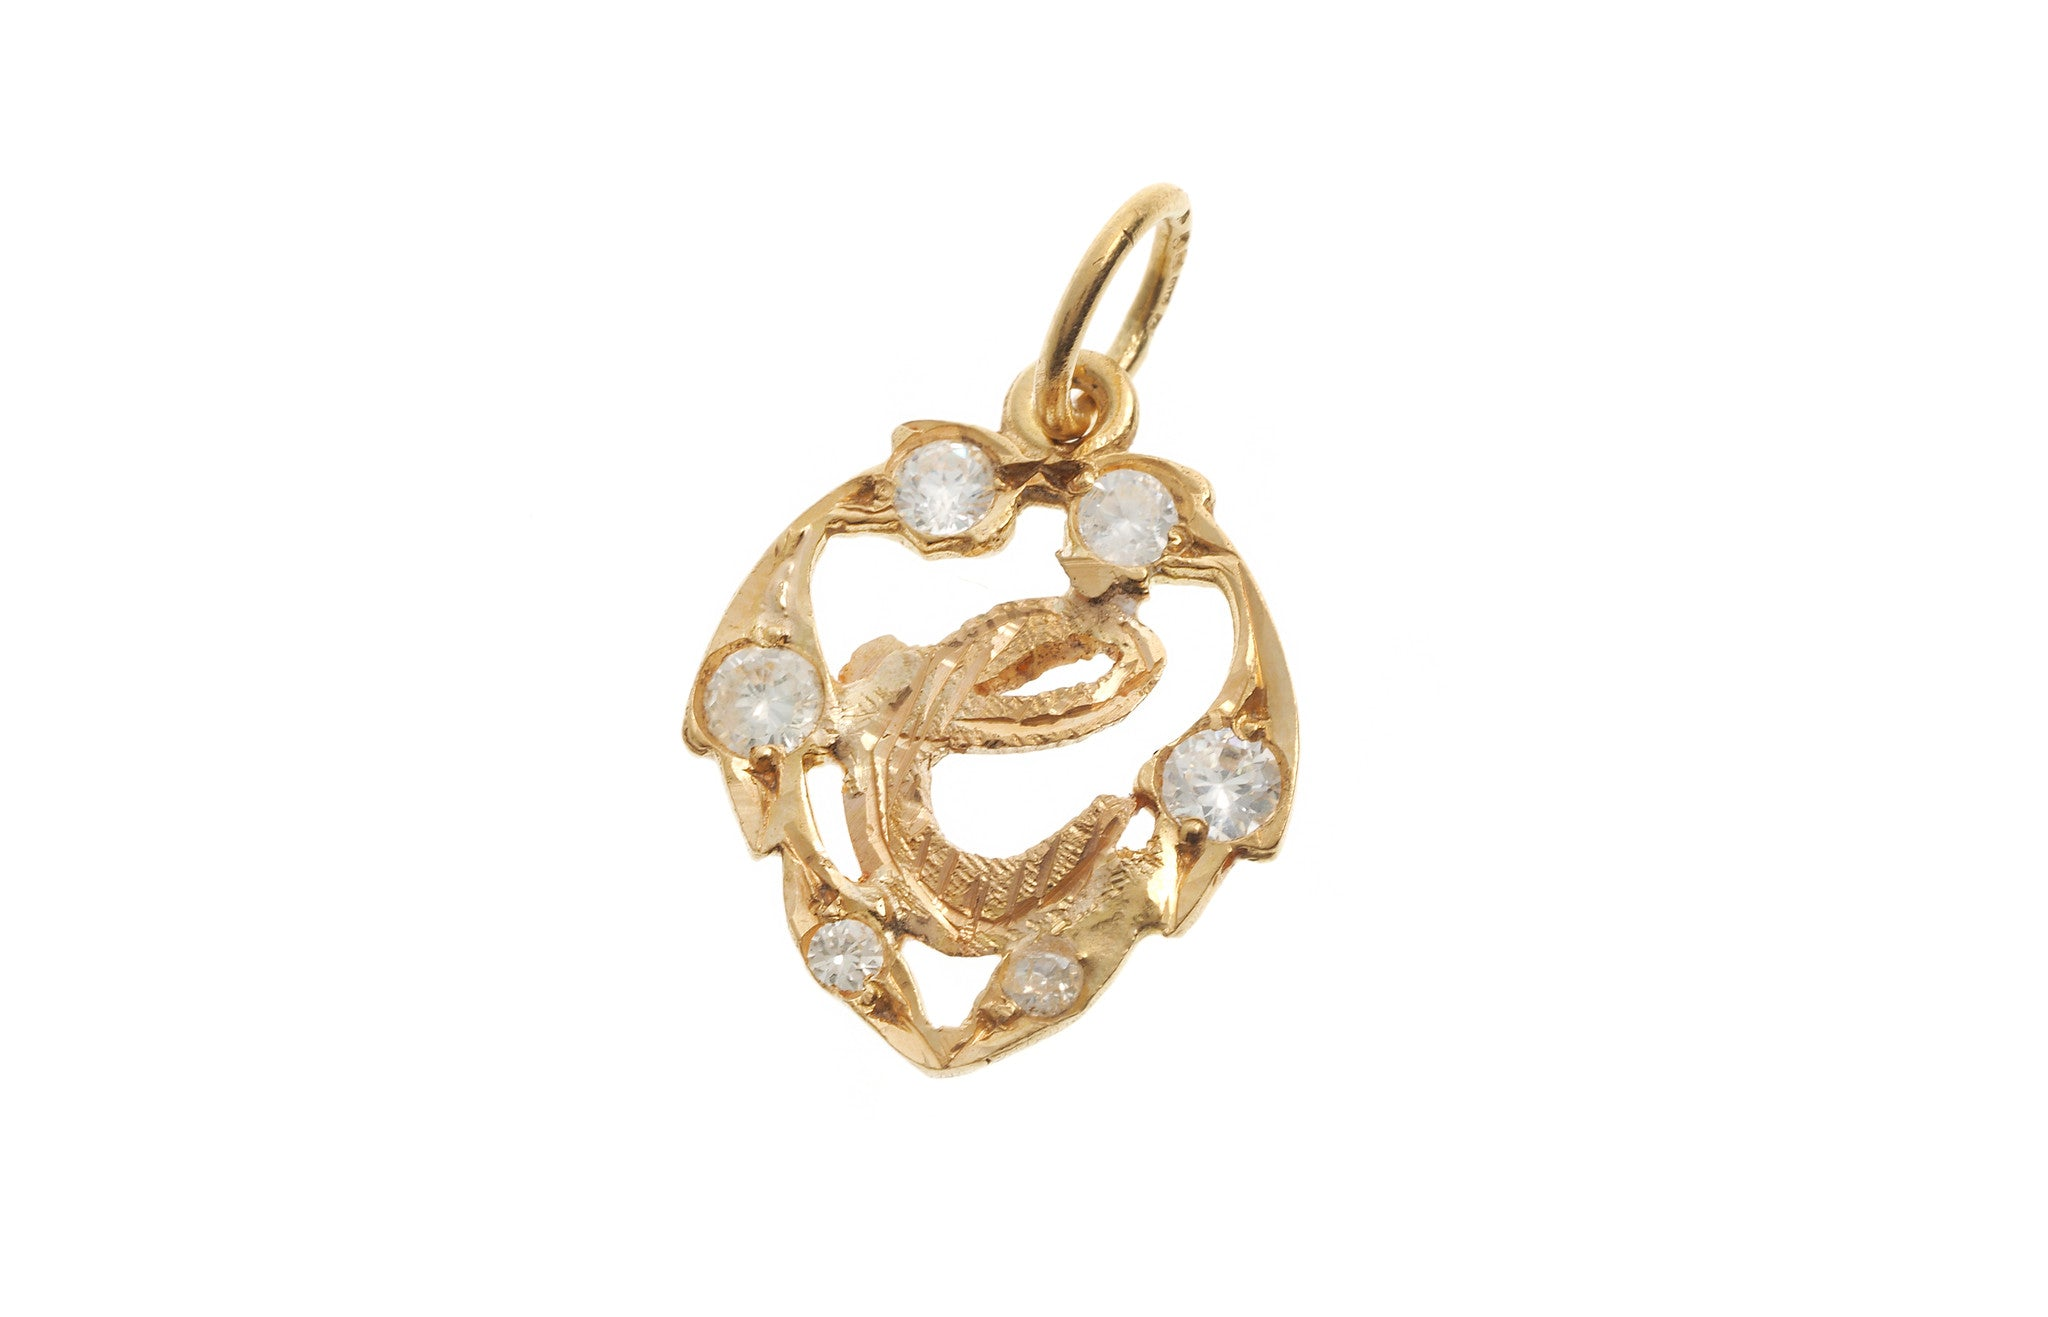 'E' Initial Pendant 22ct Yellow Gold Cubic Zirconia (1.7g) P-5615